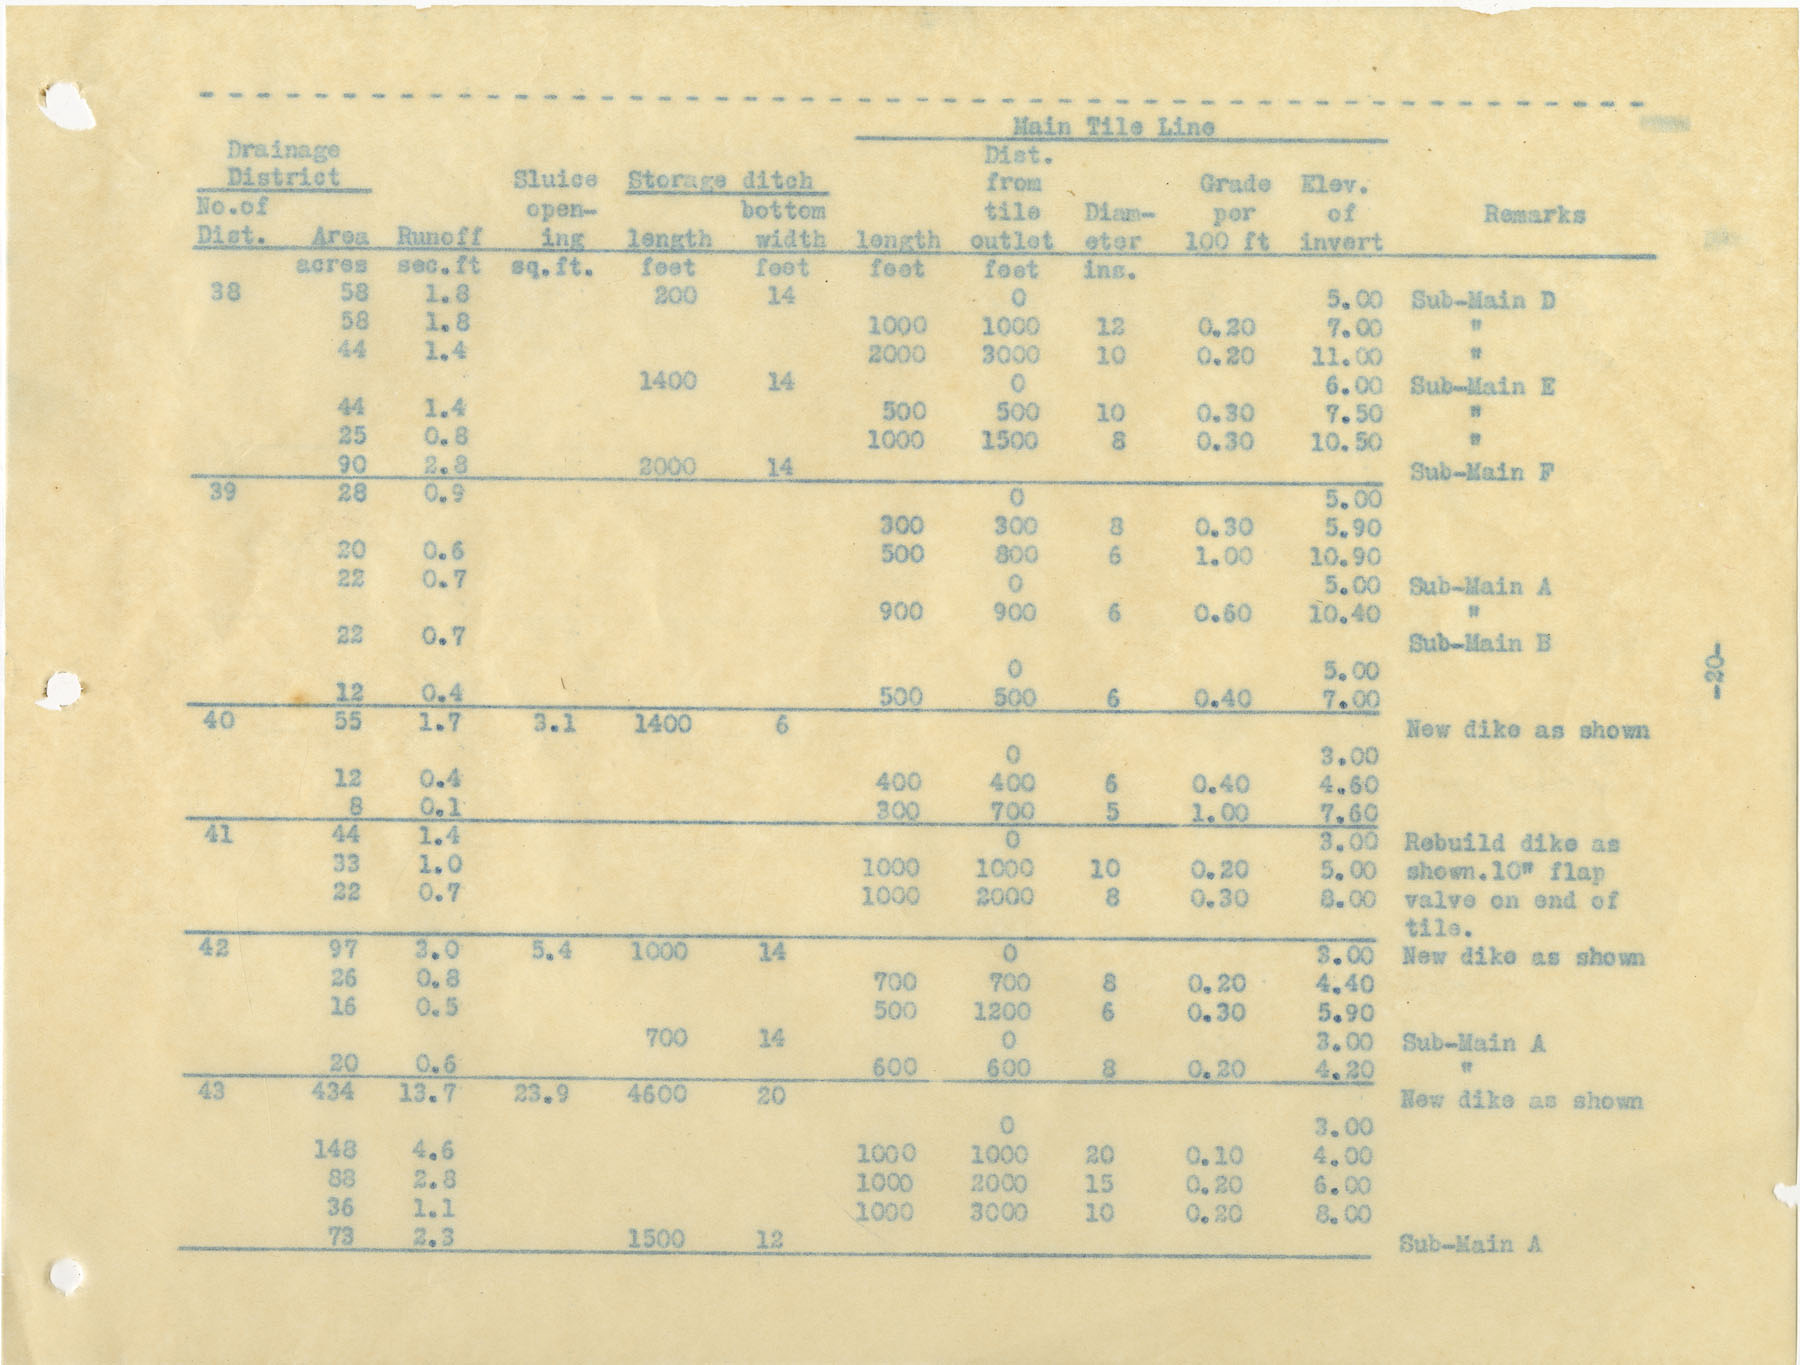 Drainage Report, Page 22